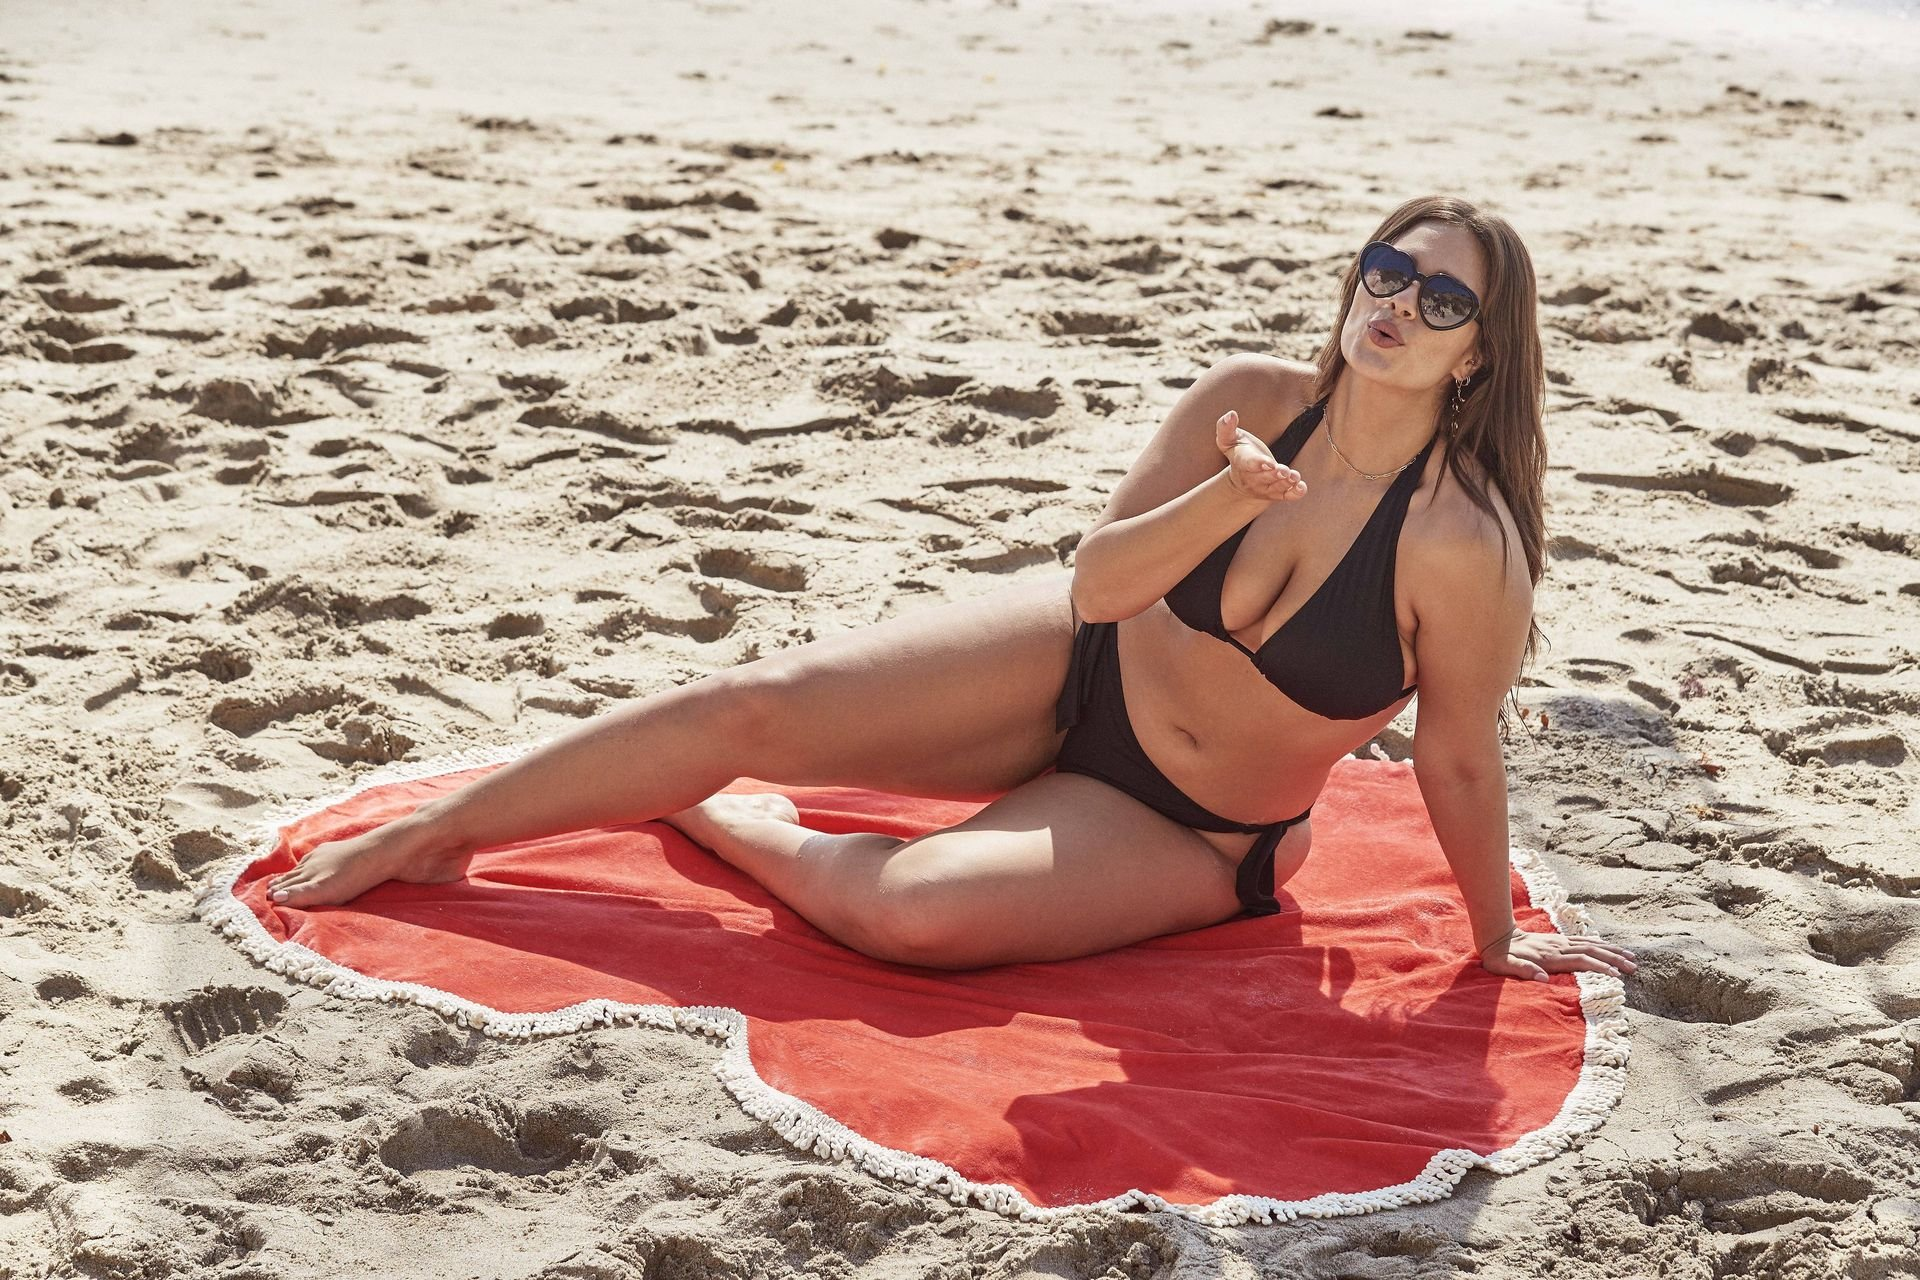 Ashley Graham showing off her new swimwear collection on a heart-shaped towel, 13-02-2019